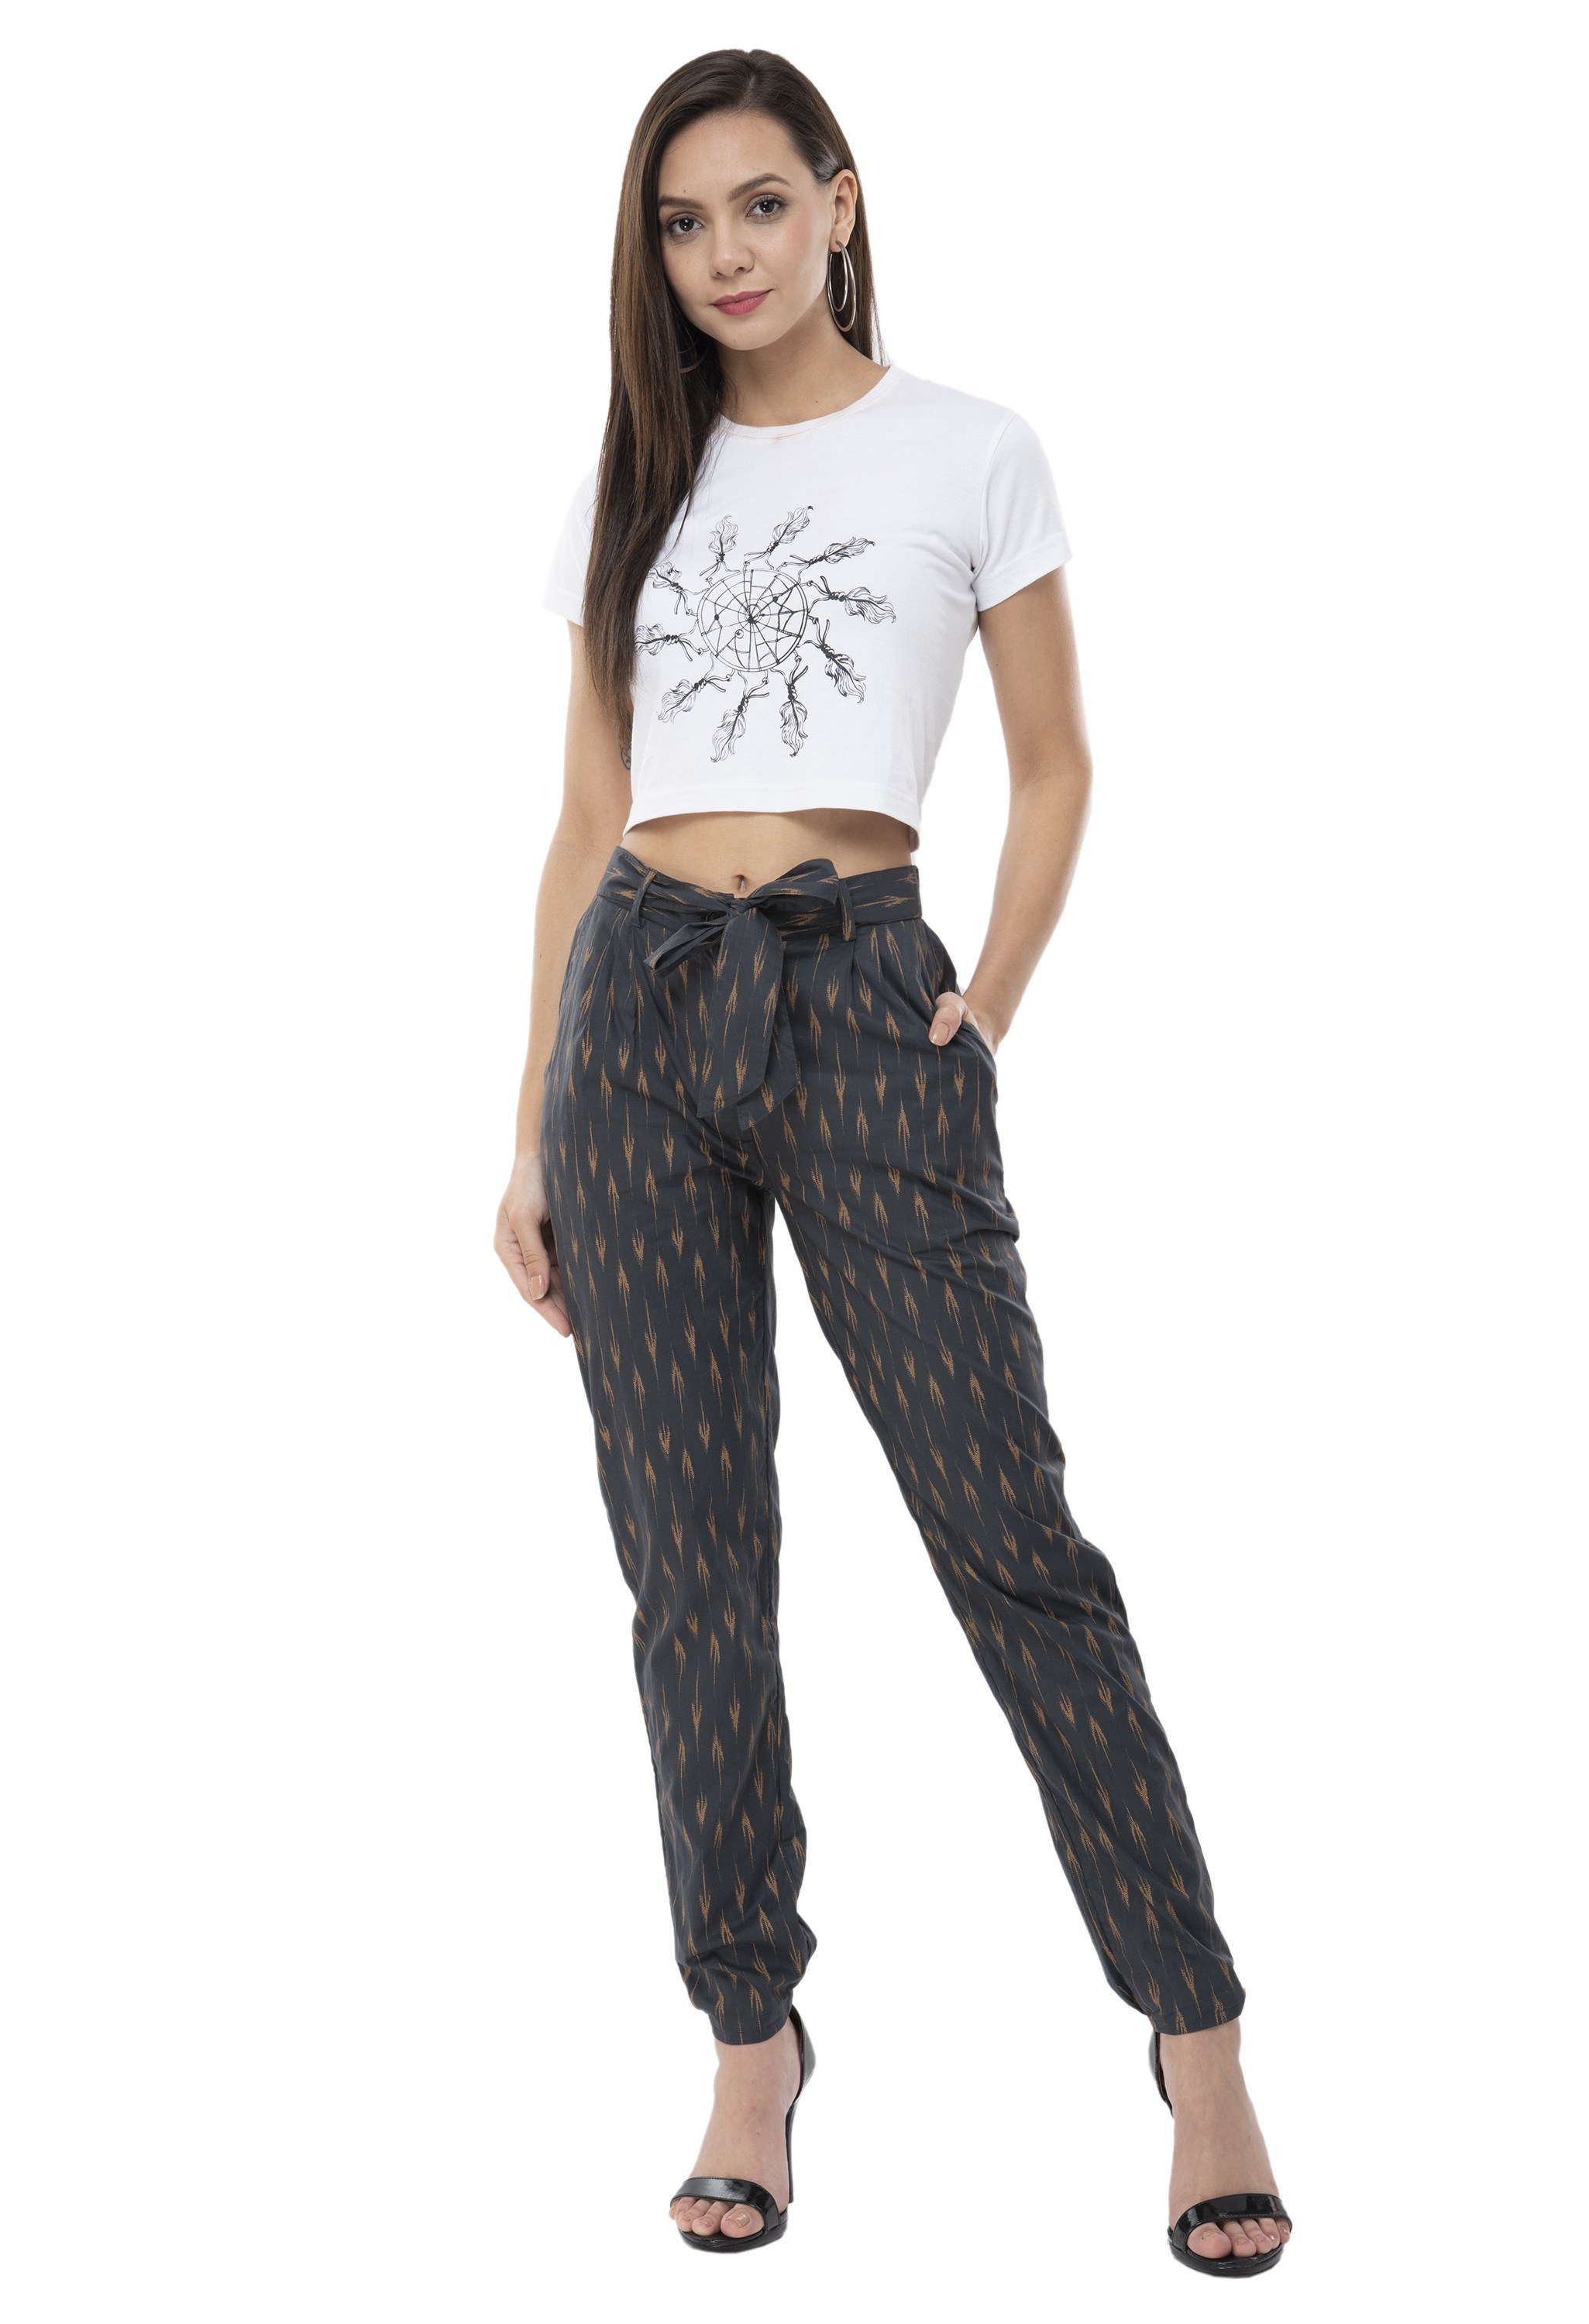 Printed Grey Regular Fit Trousers from Grab Your Garb